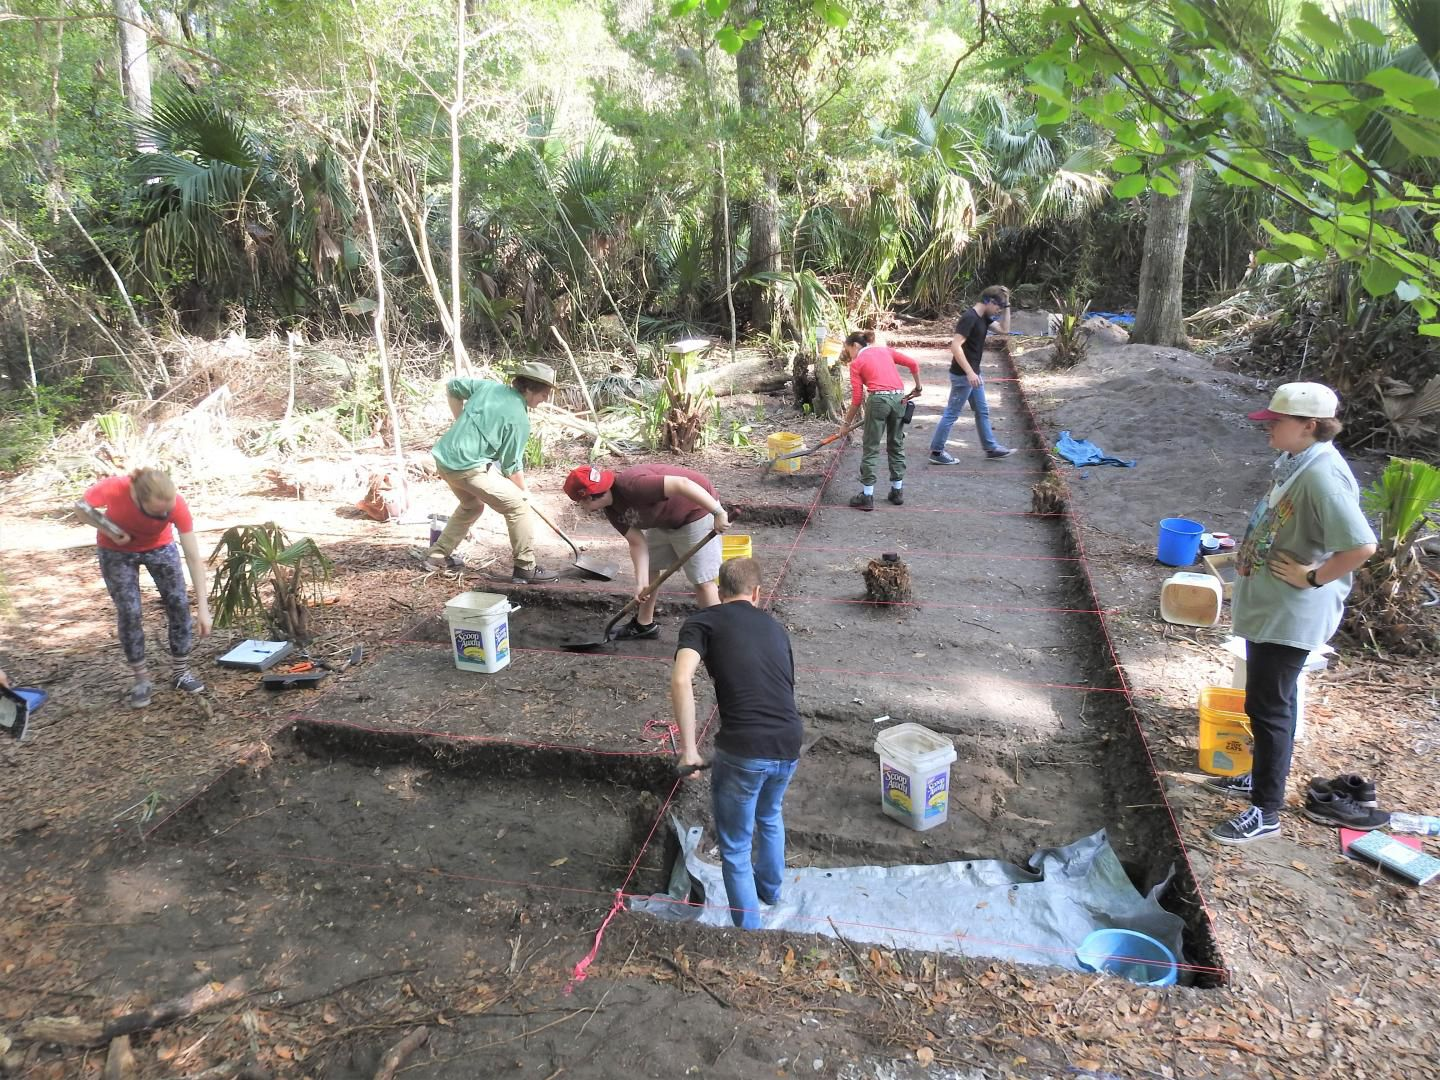 Is This Florida Island Home to a Long-Lost Native American Settlement?